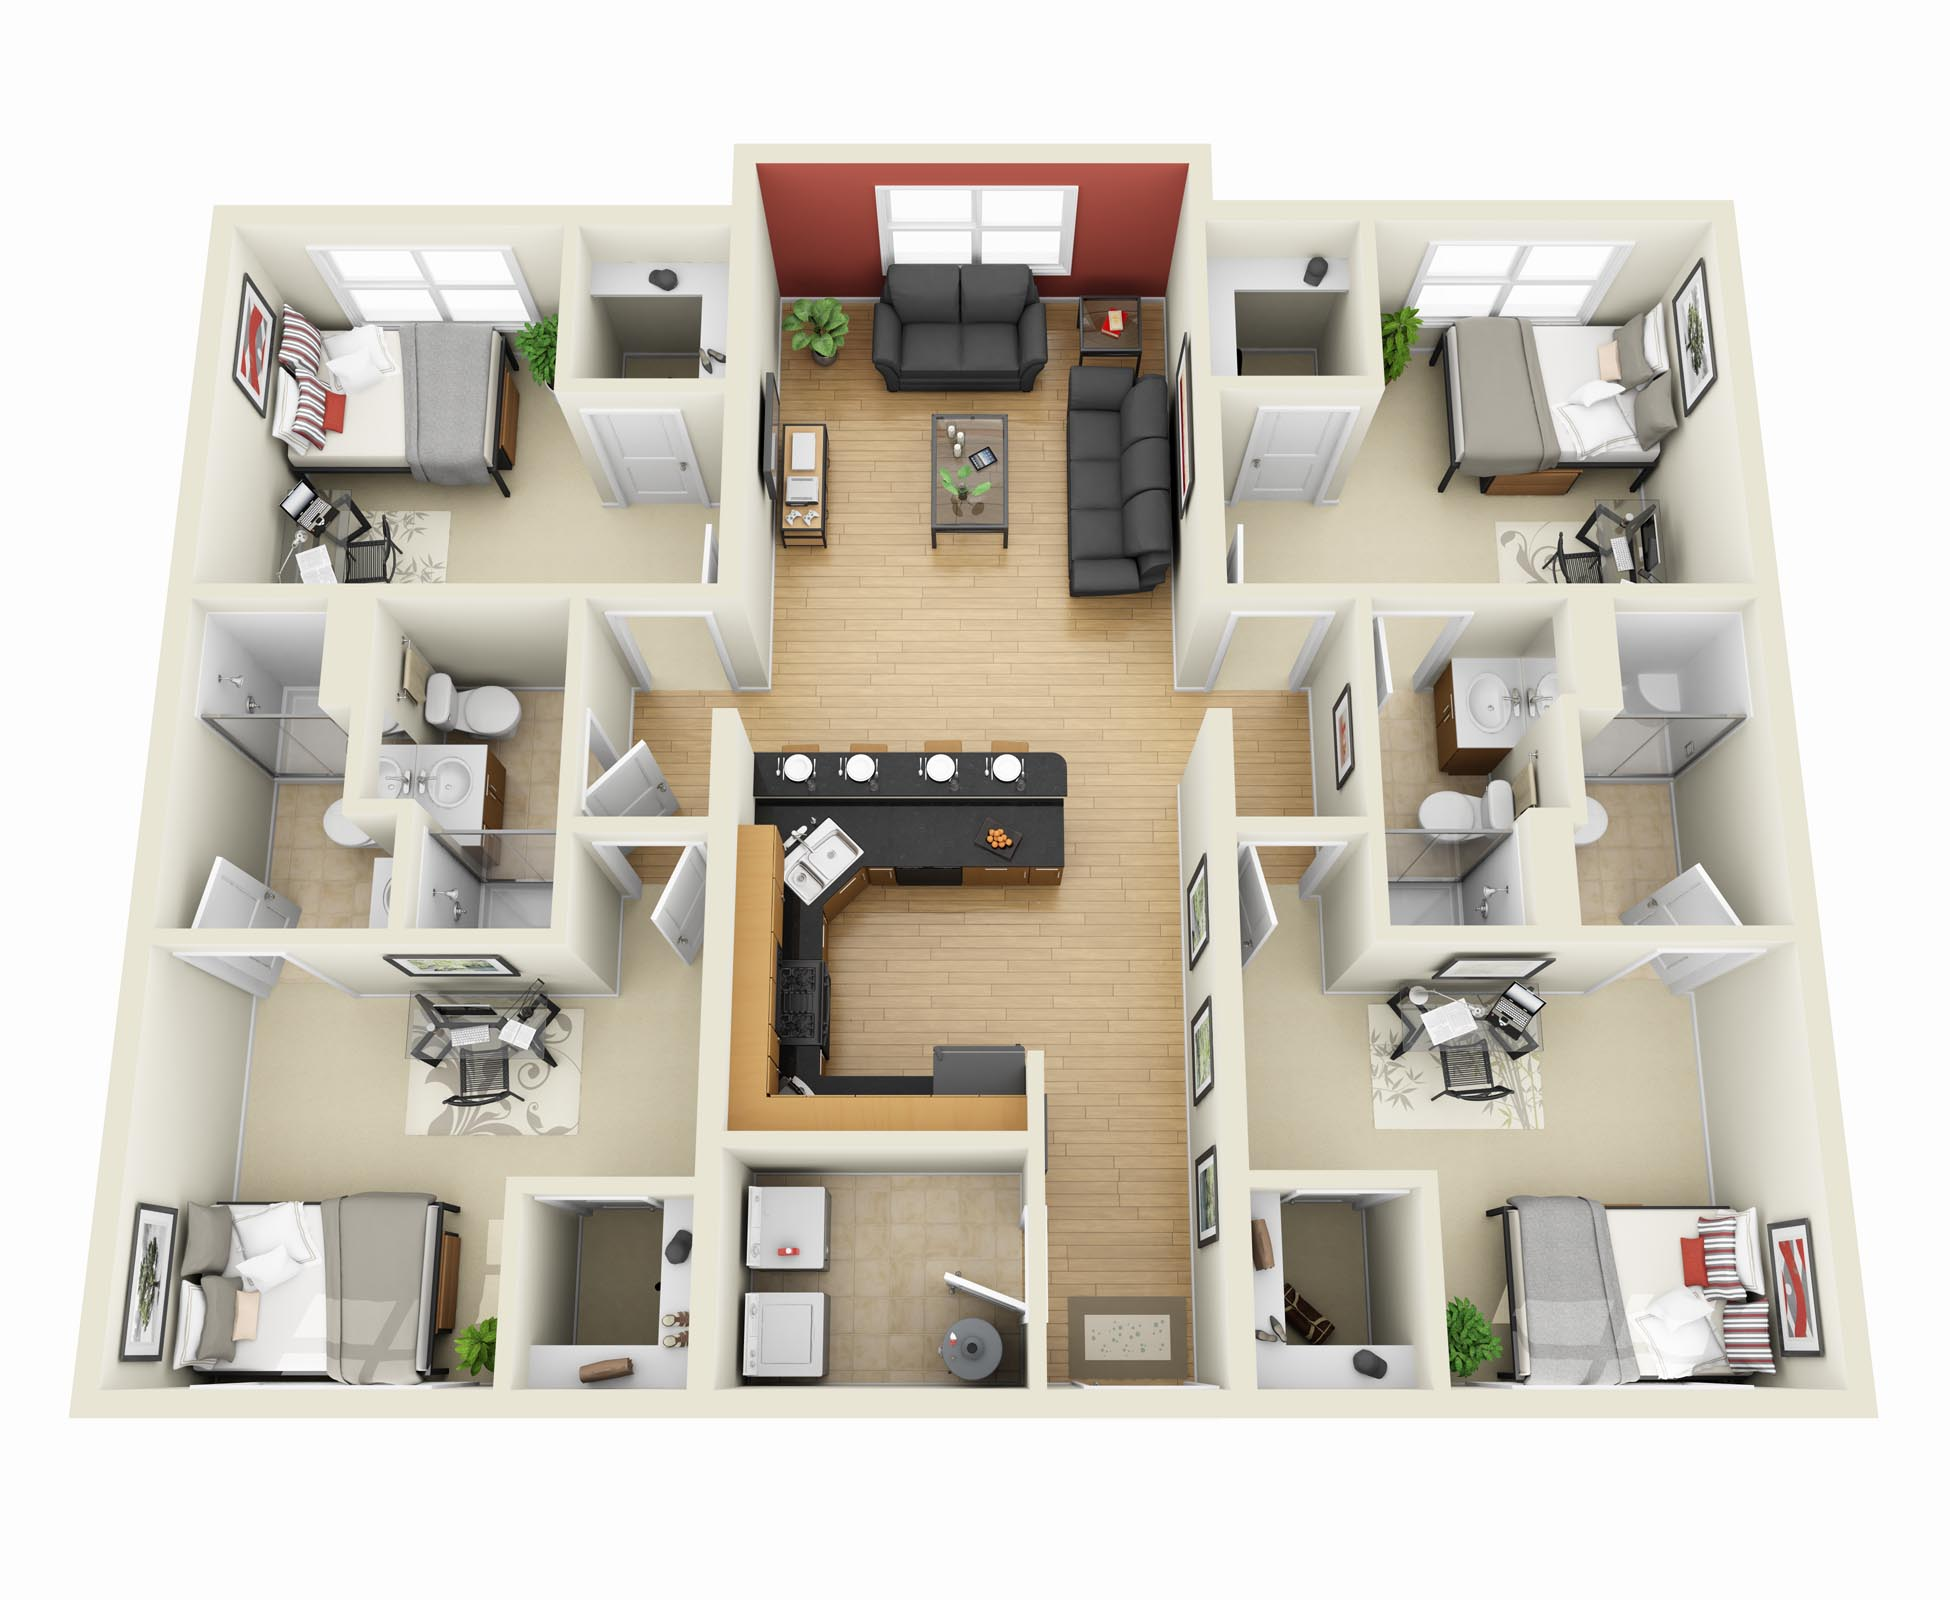 4 bedroom floor plans 4 bedroom apartment house plans 1226